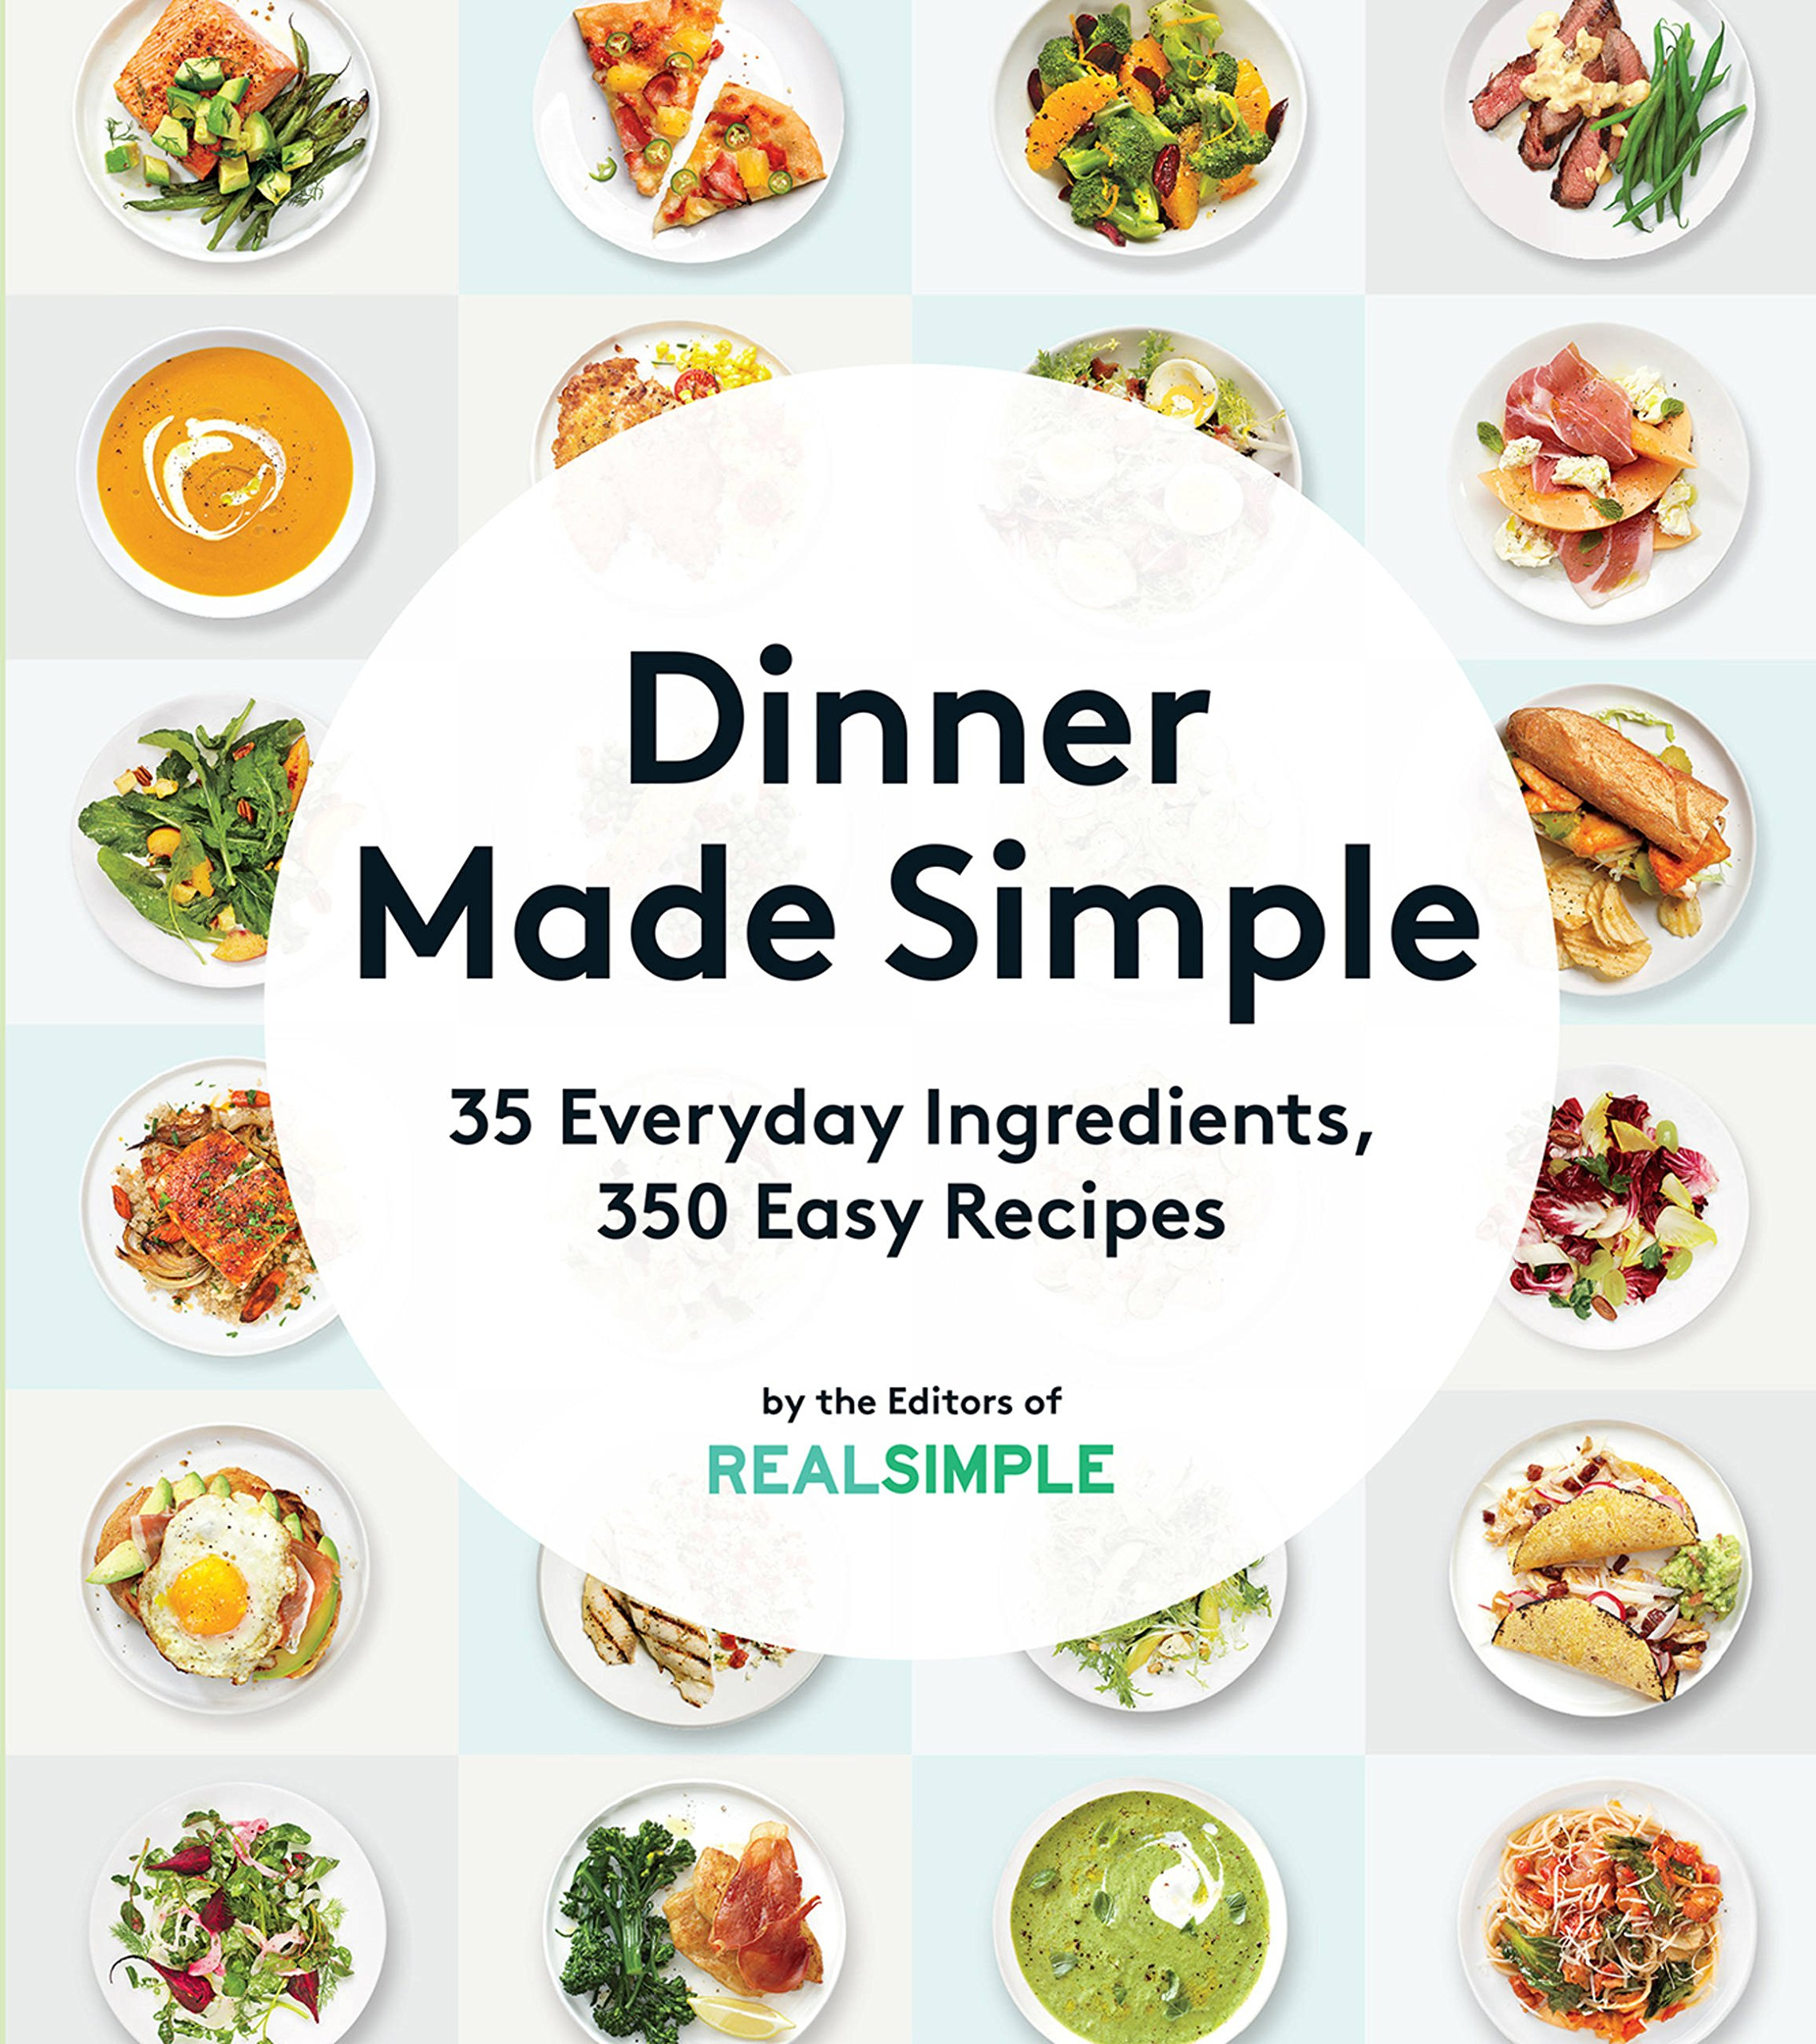 Dinner made simple 35 everyday ingredients 350 easy recipes the dinner made simple 35 everyday ingredients 350 easy recipes the editors of real simple 9780848746896 amazon books forumfinder Images